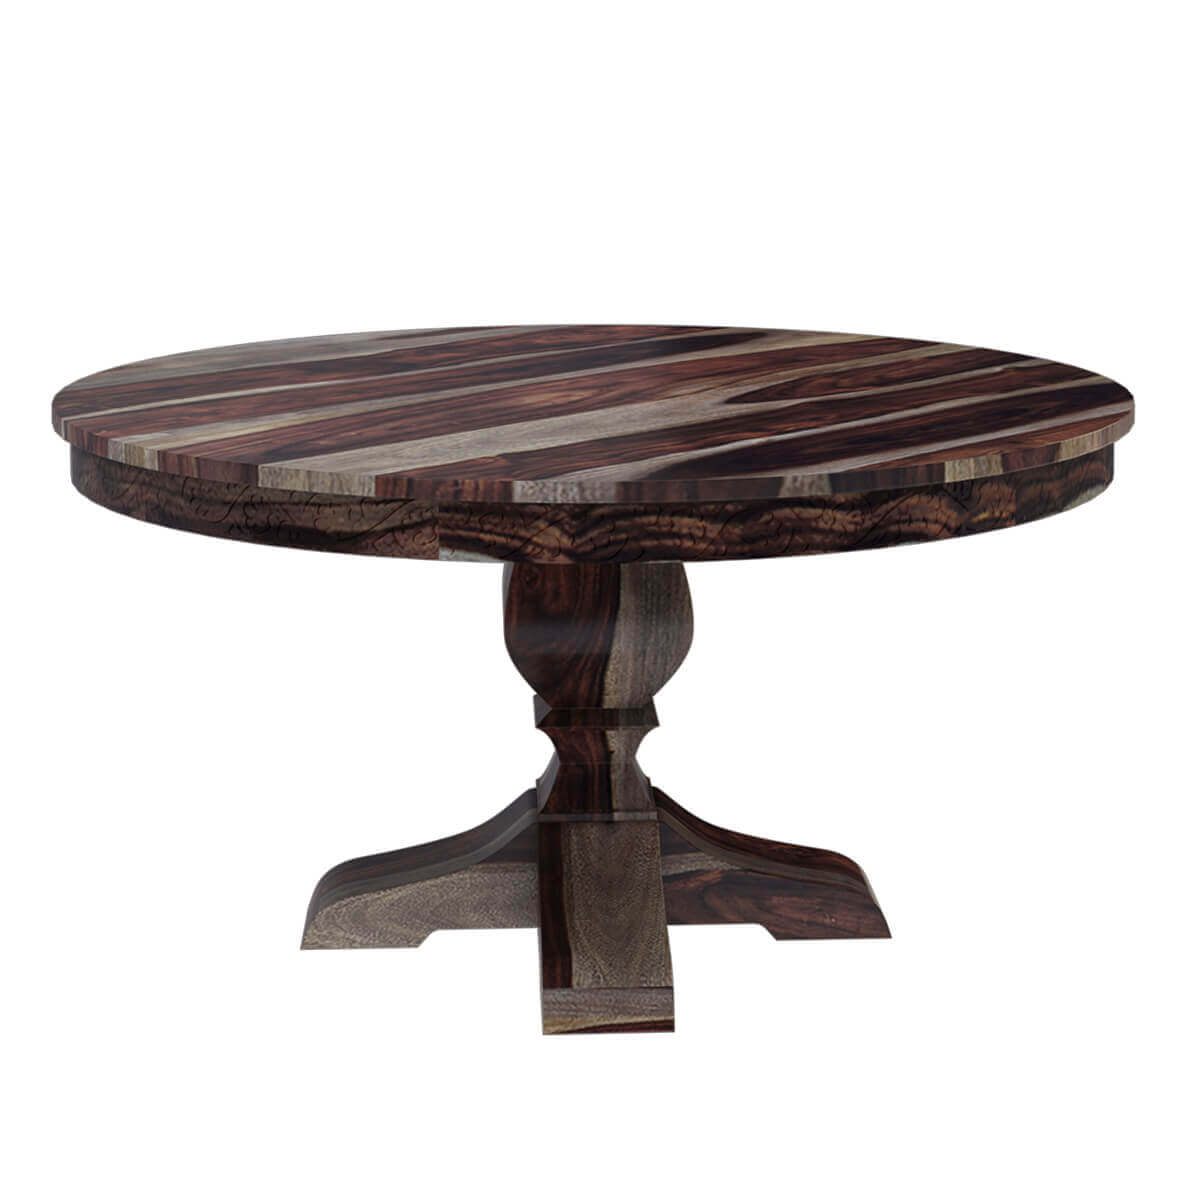 Hosford handcrafted solid wood 60 round pedestal dining table for Solid wood round tables dining